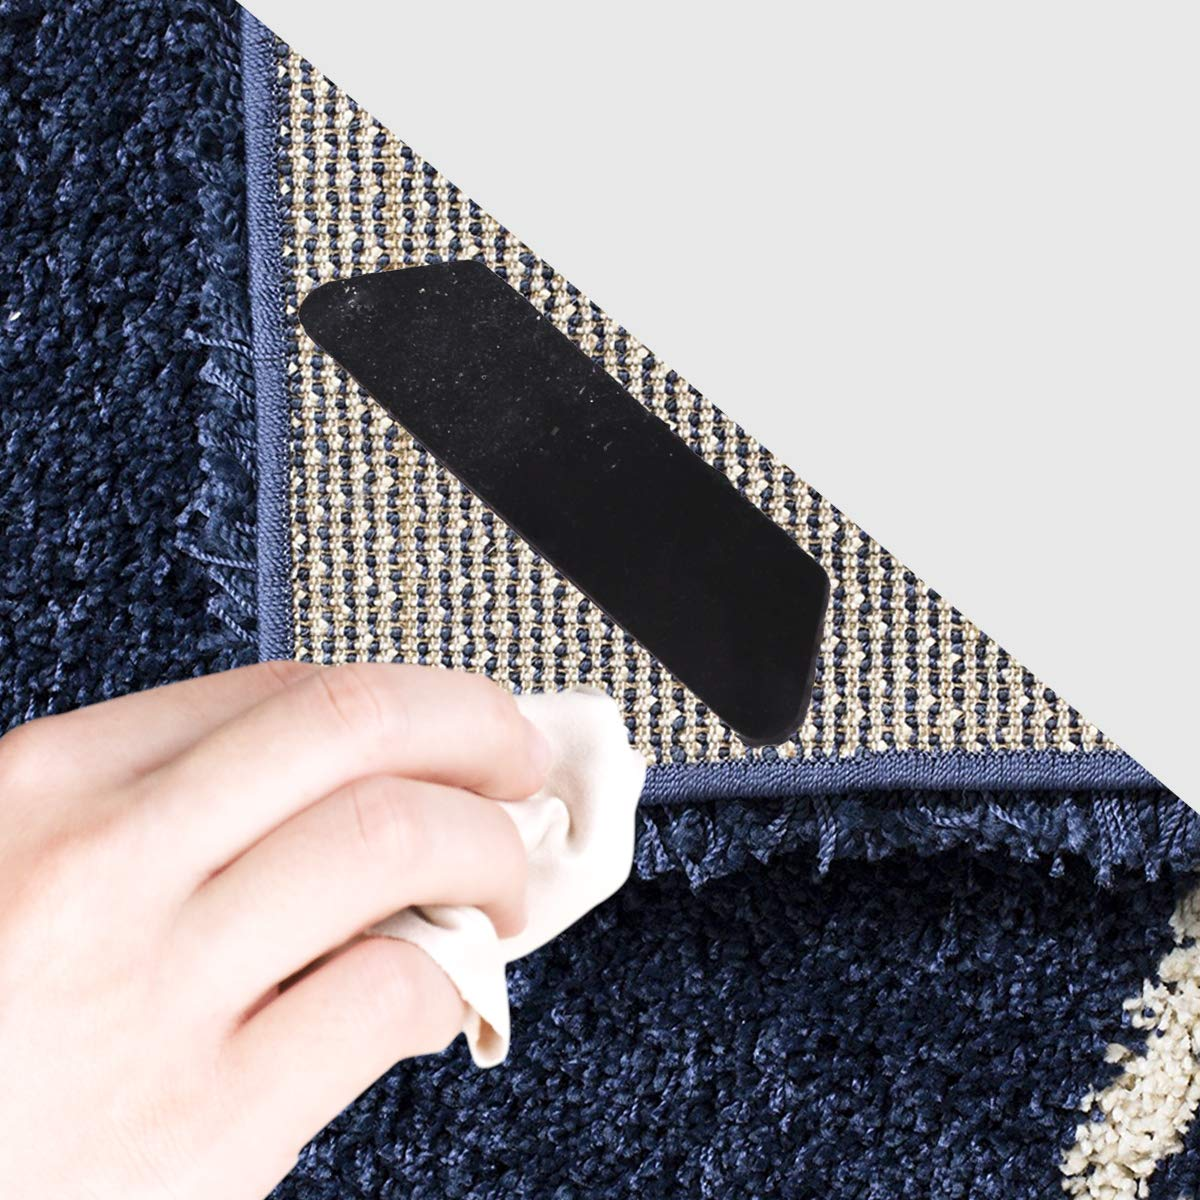 Rug Grippers DINOKA Anti Curling Rug Gripper 16pcs Renewable /& Reusable Carpet Gripper Keeps Your Rug White Rug Pad or Carpet Padding Flat Stops Rug Corner Curling Perfect for Area Rugs